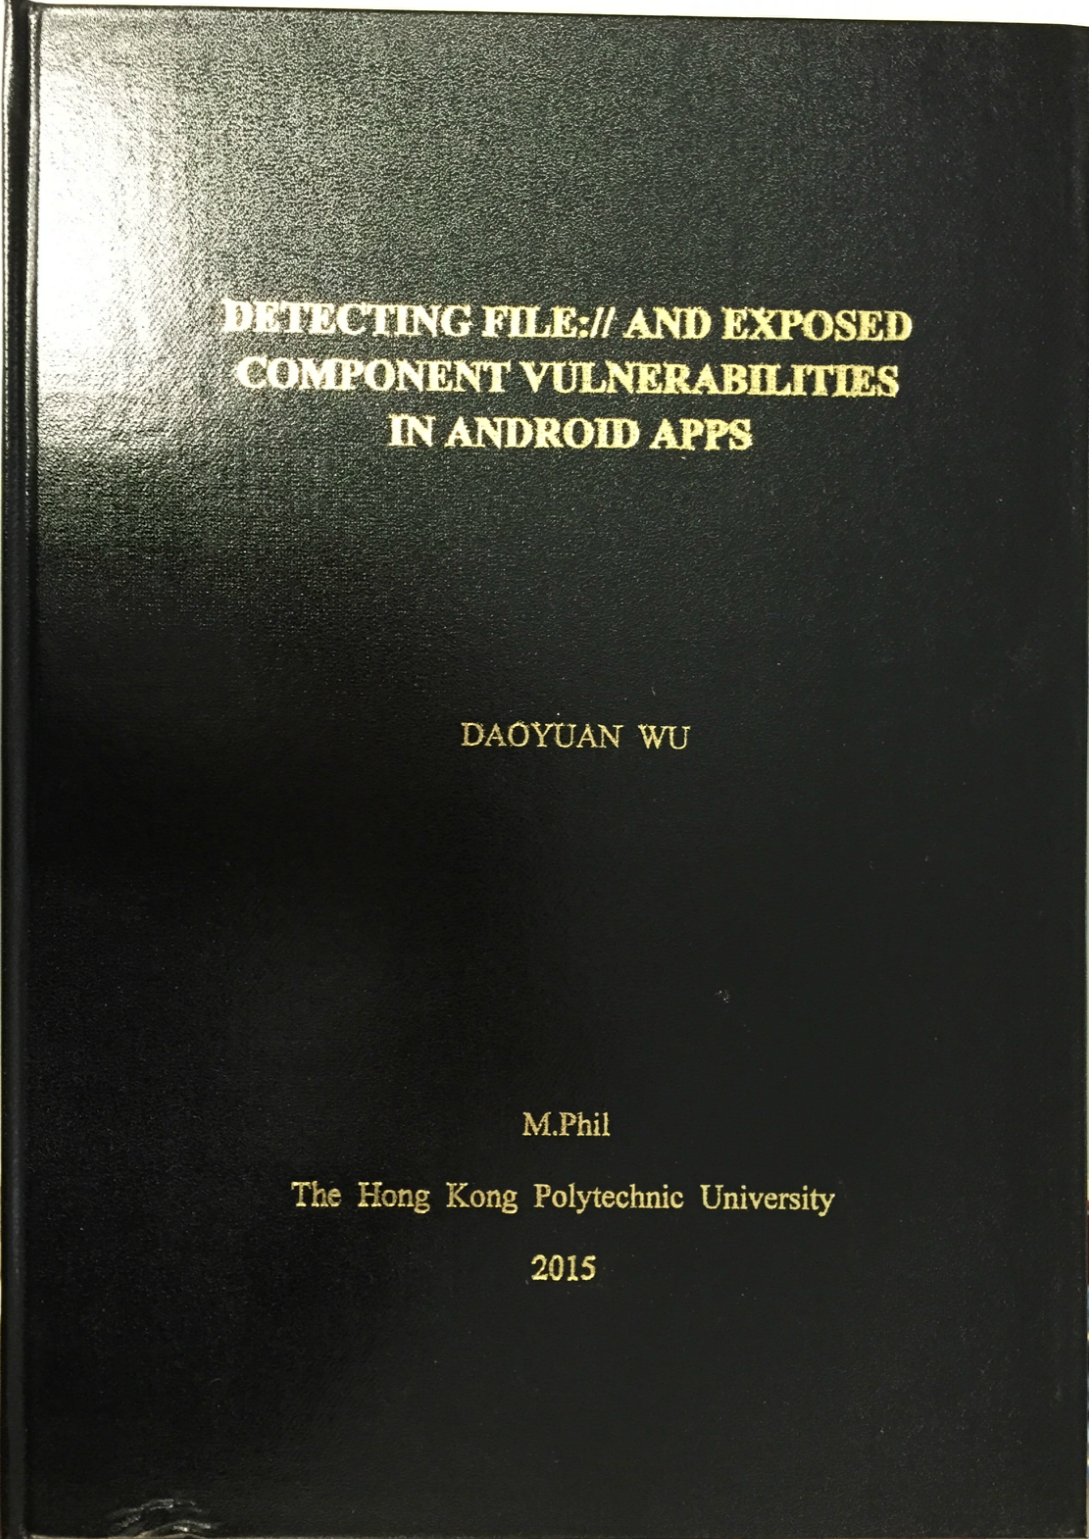 thesis about mobile